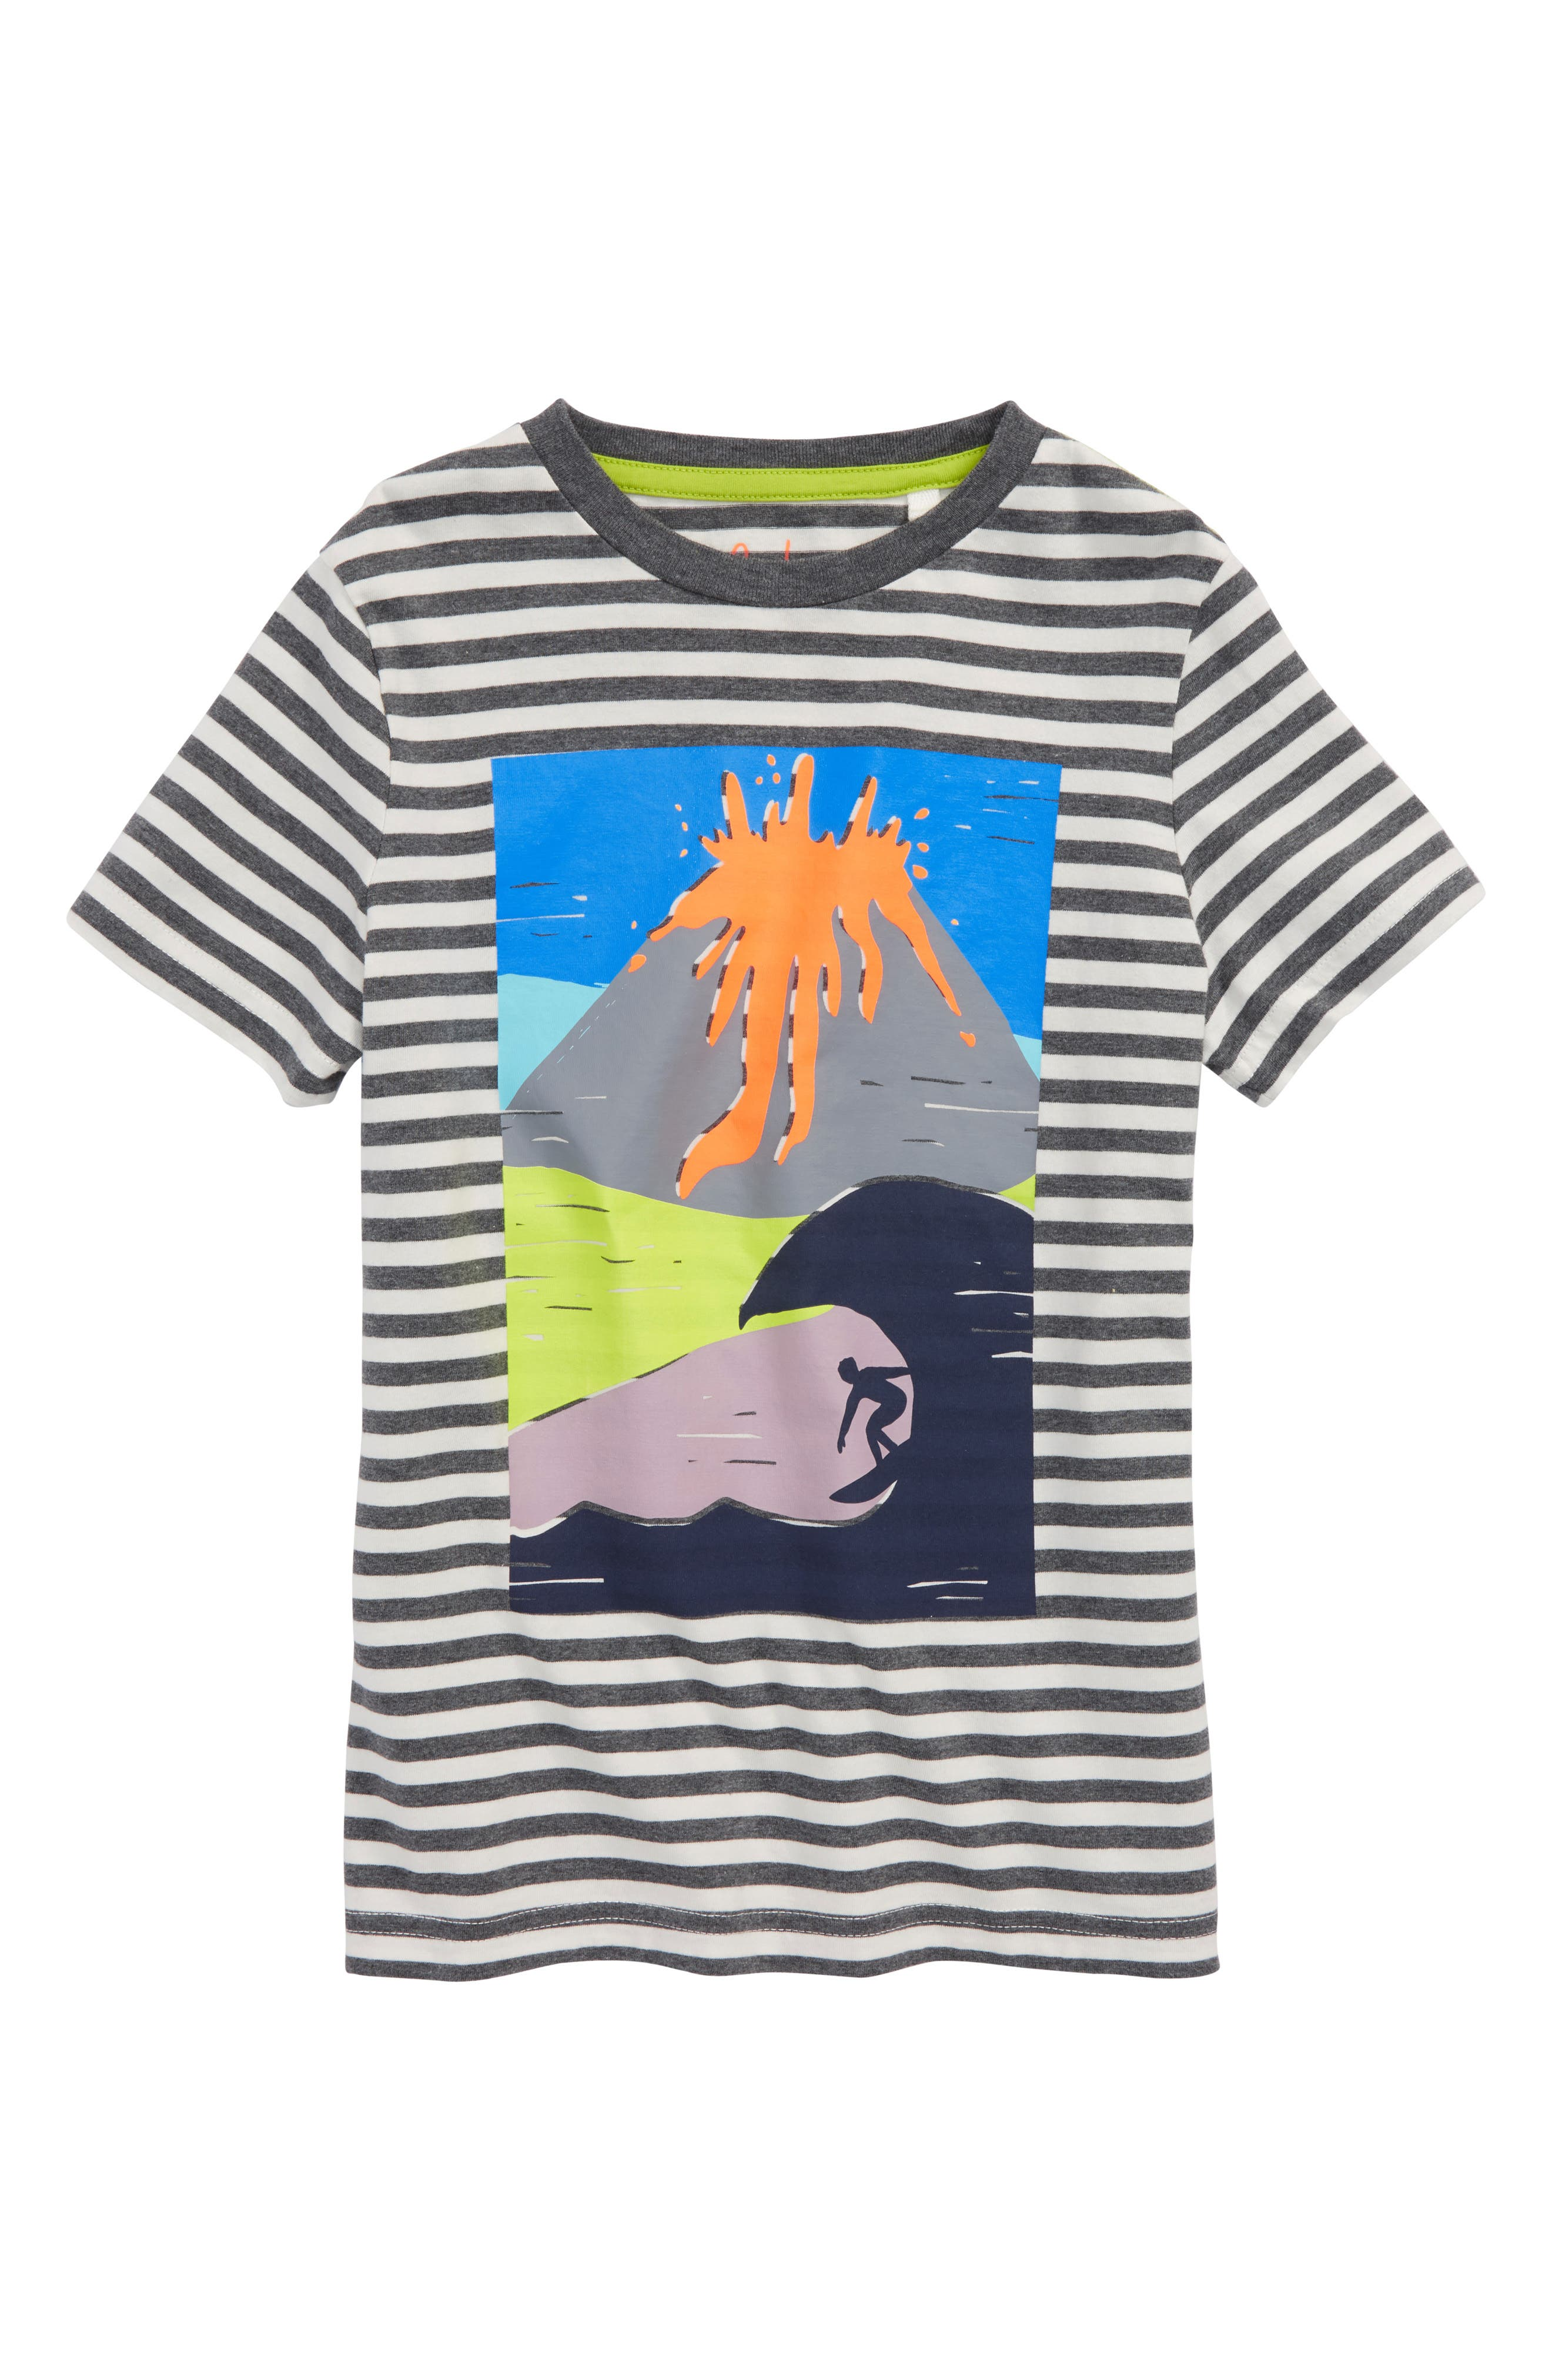 Arty Volcano T-Shirt,                         Main,                         color,